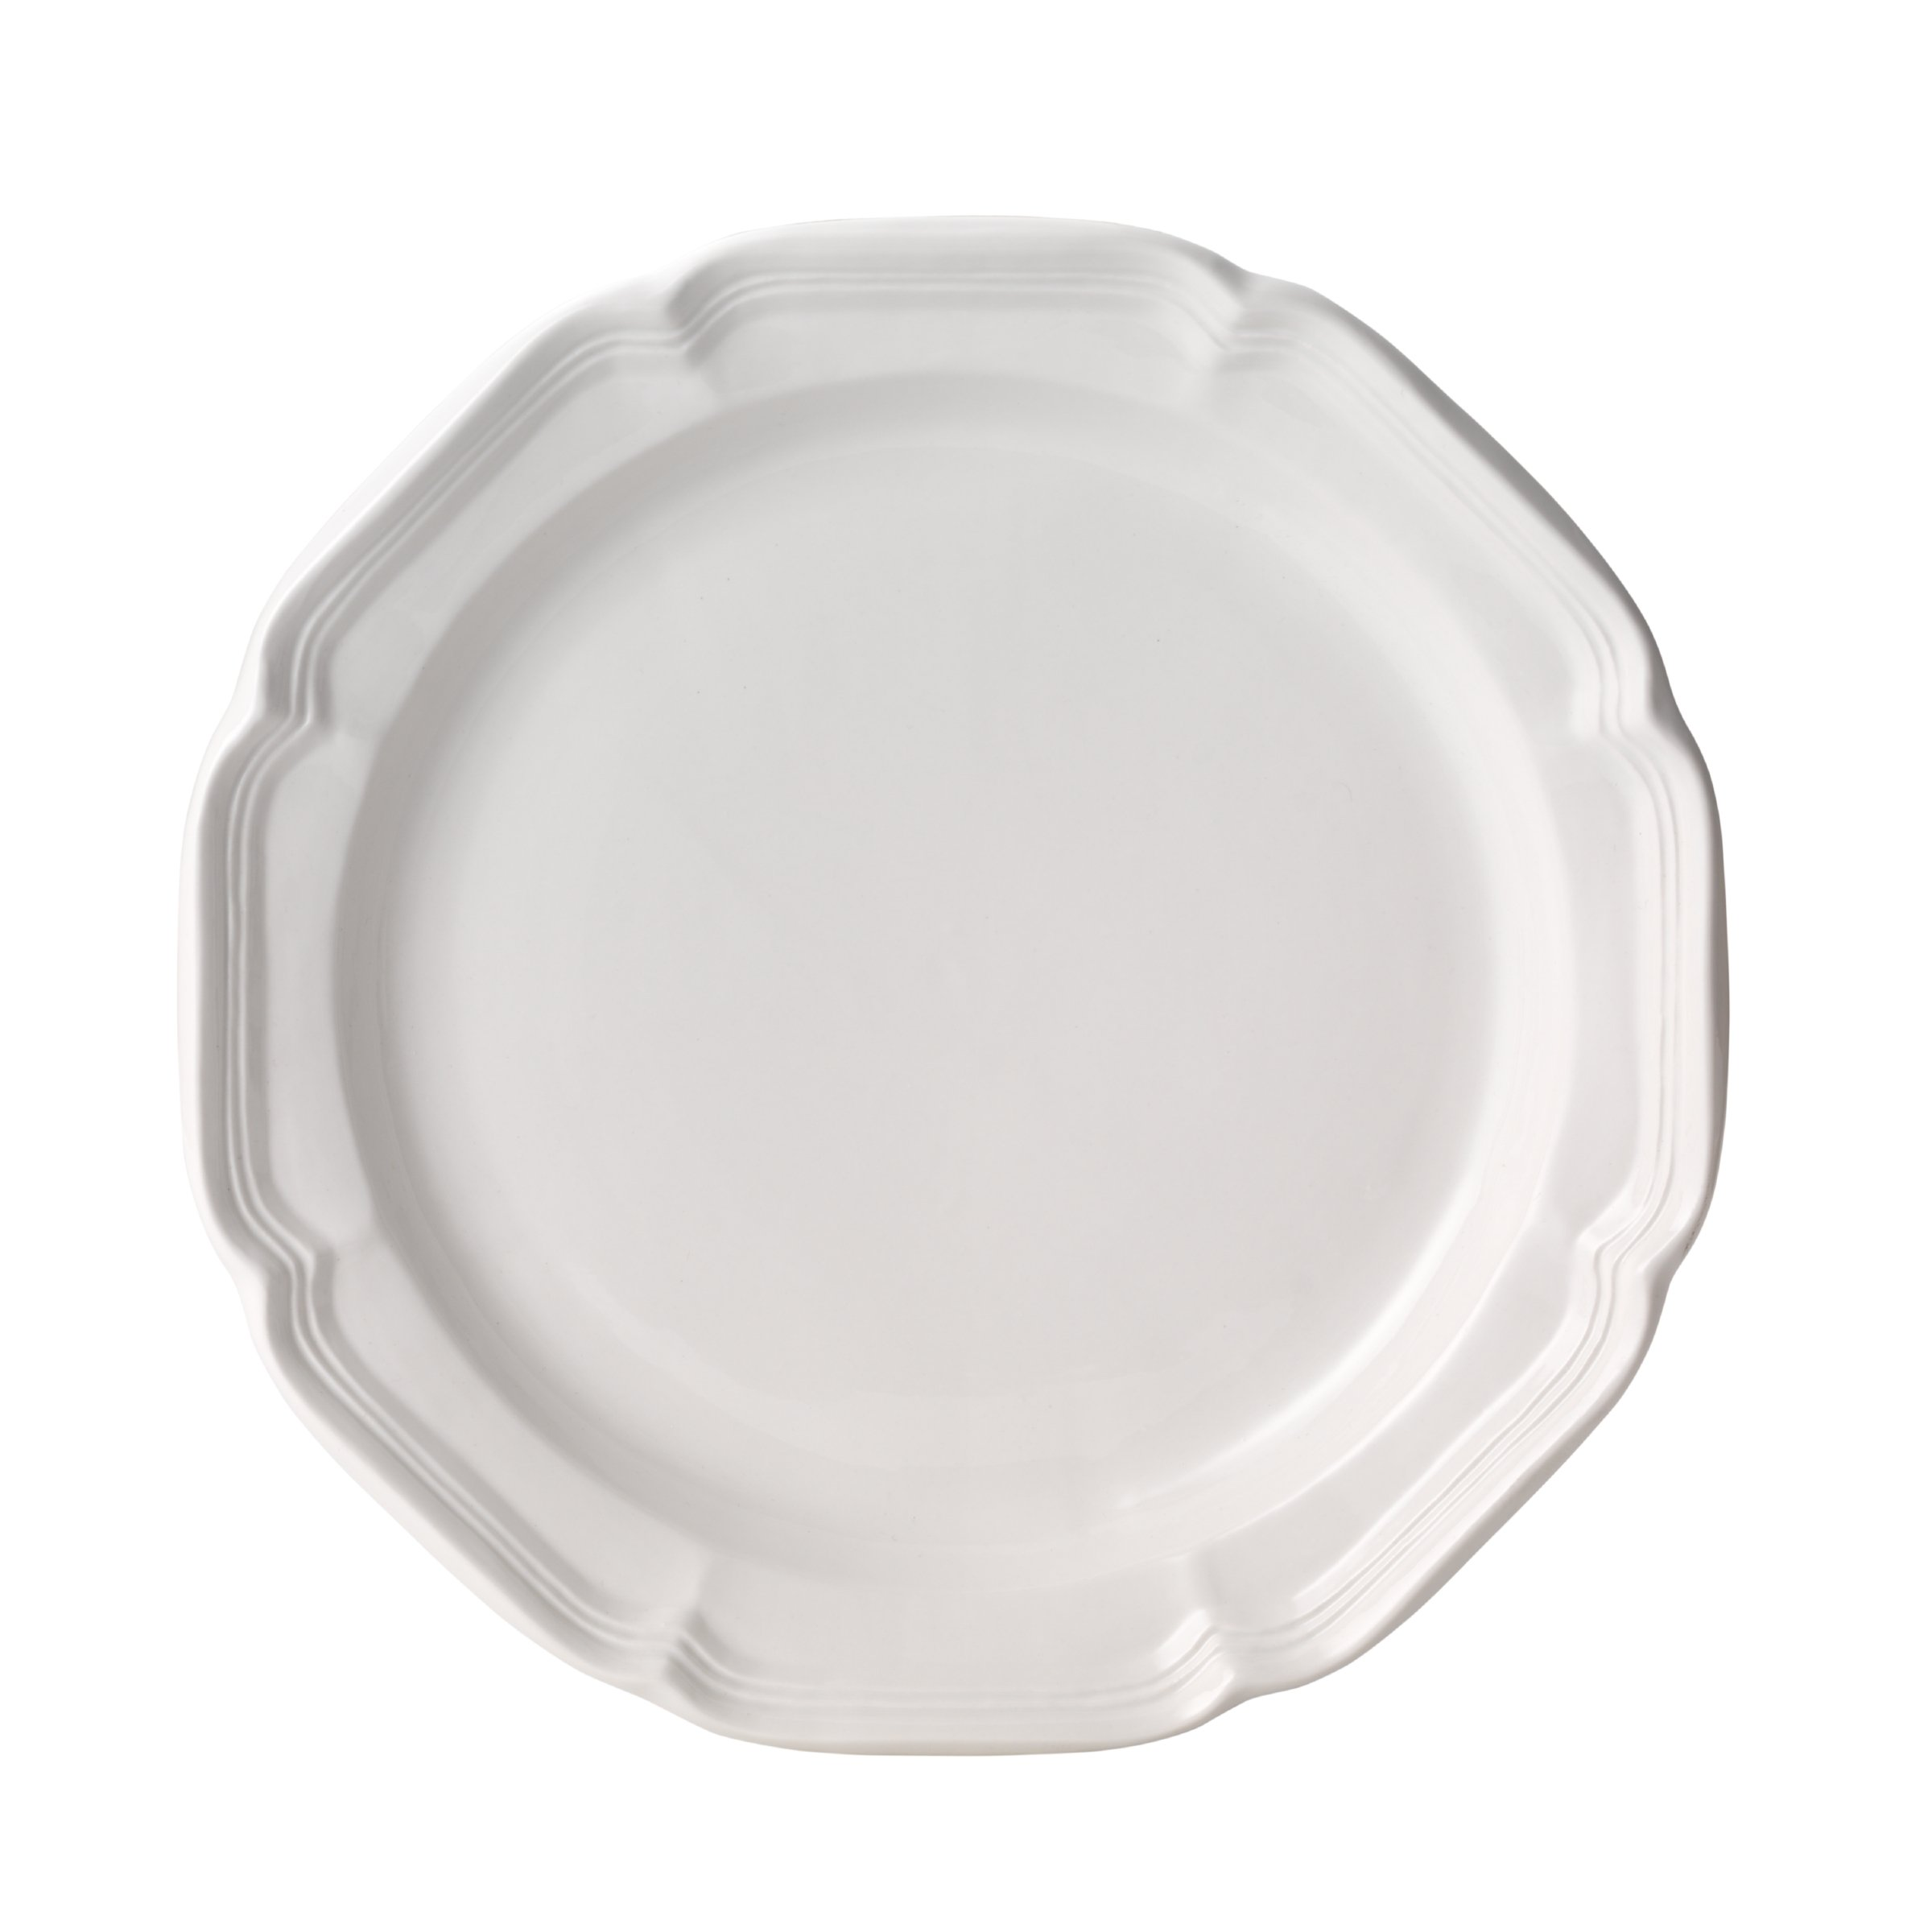 Mikasa French Country Dinner Plate, 10.75'', White